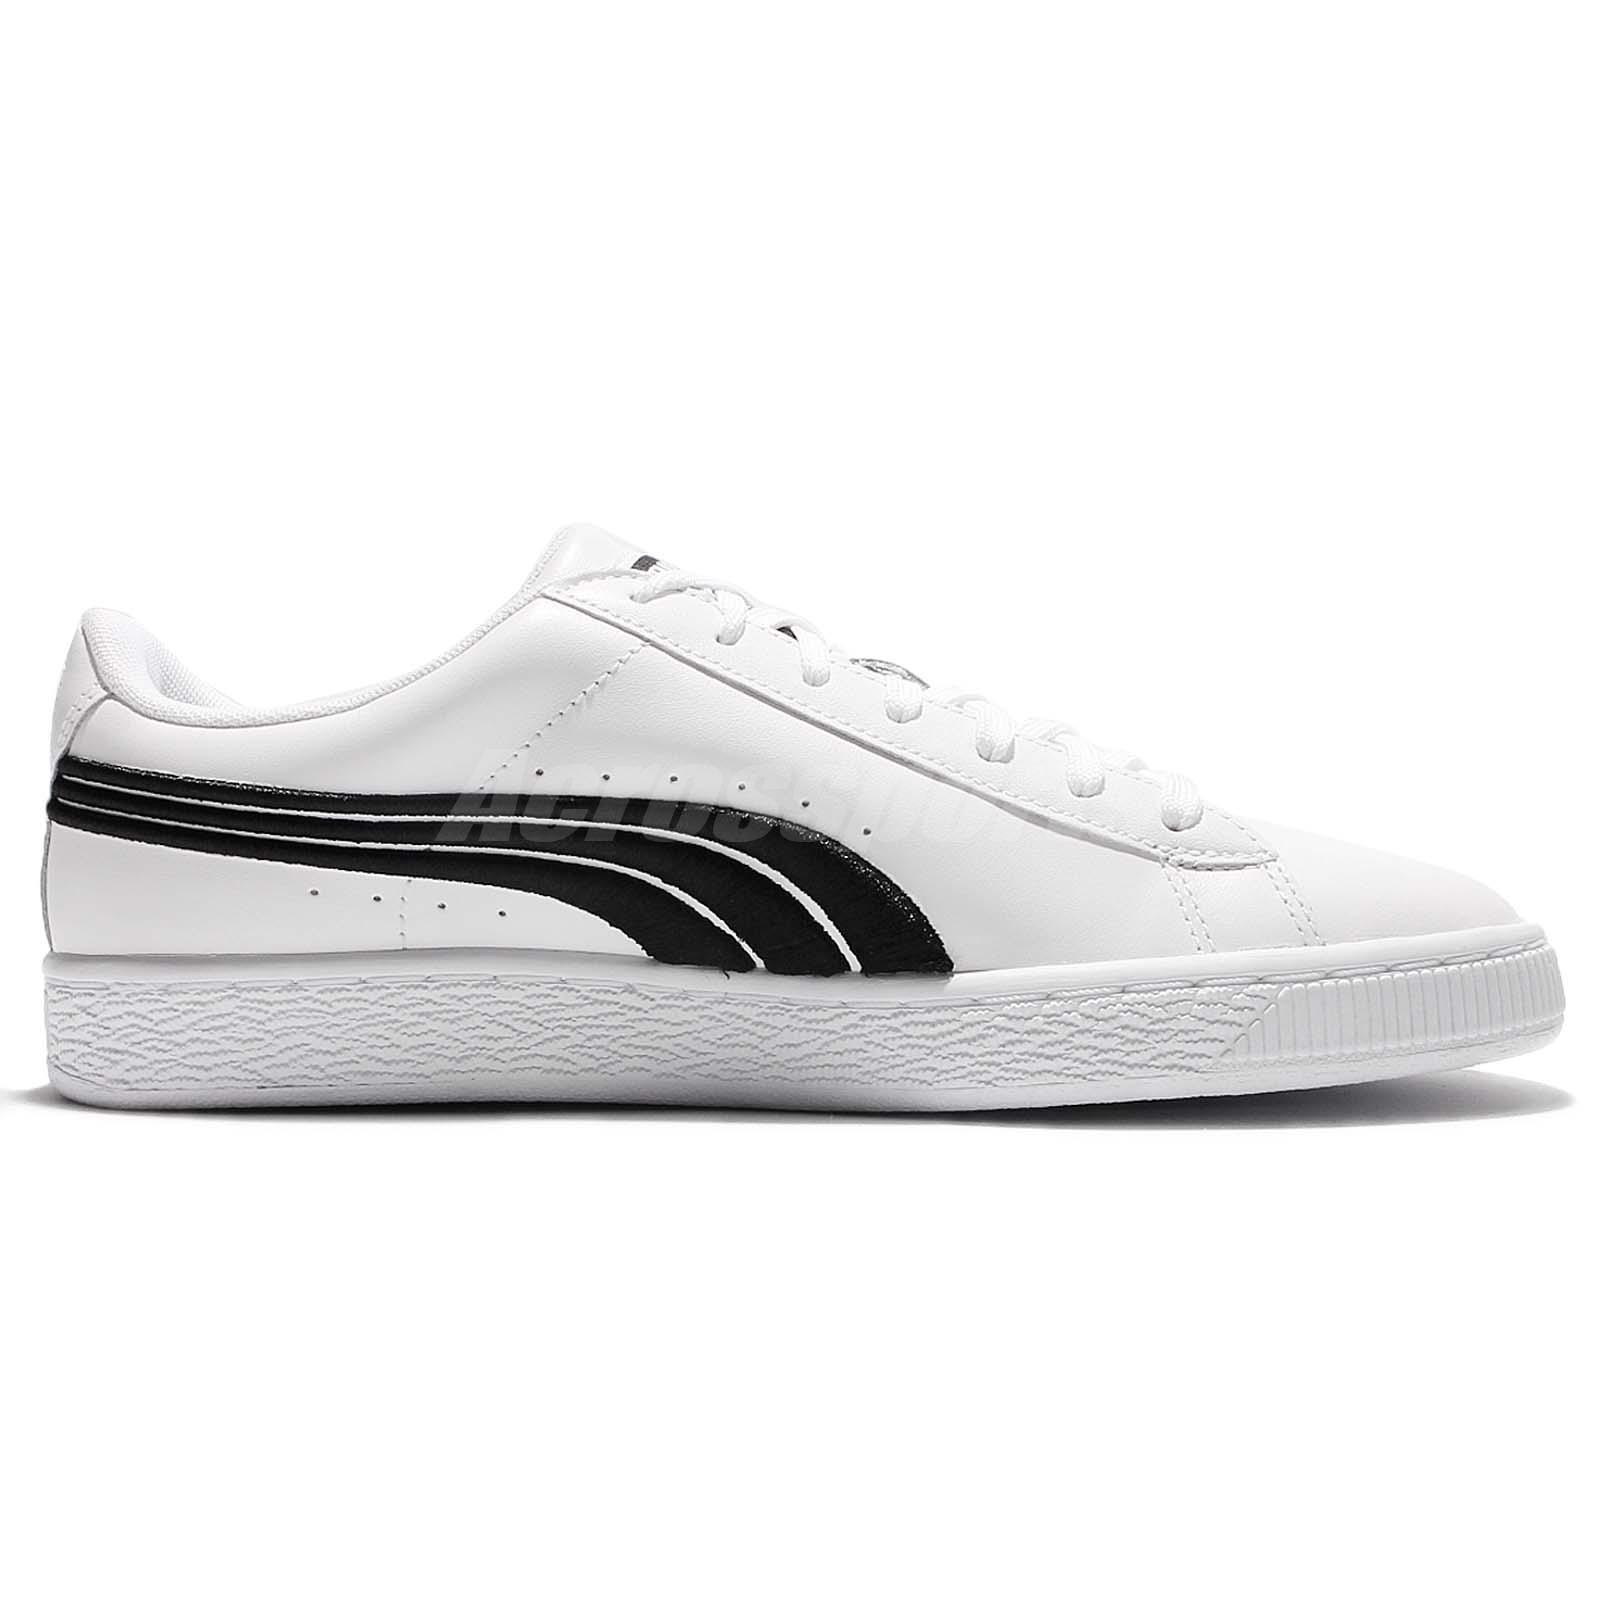 Puma Basket Classic Badge White Black Low Men Casual Shoes Sneakers ... 1c9243a69